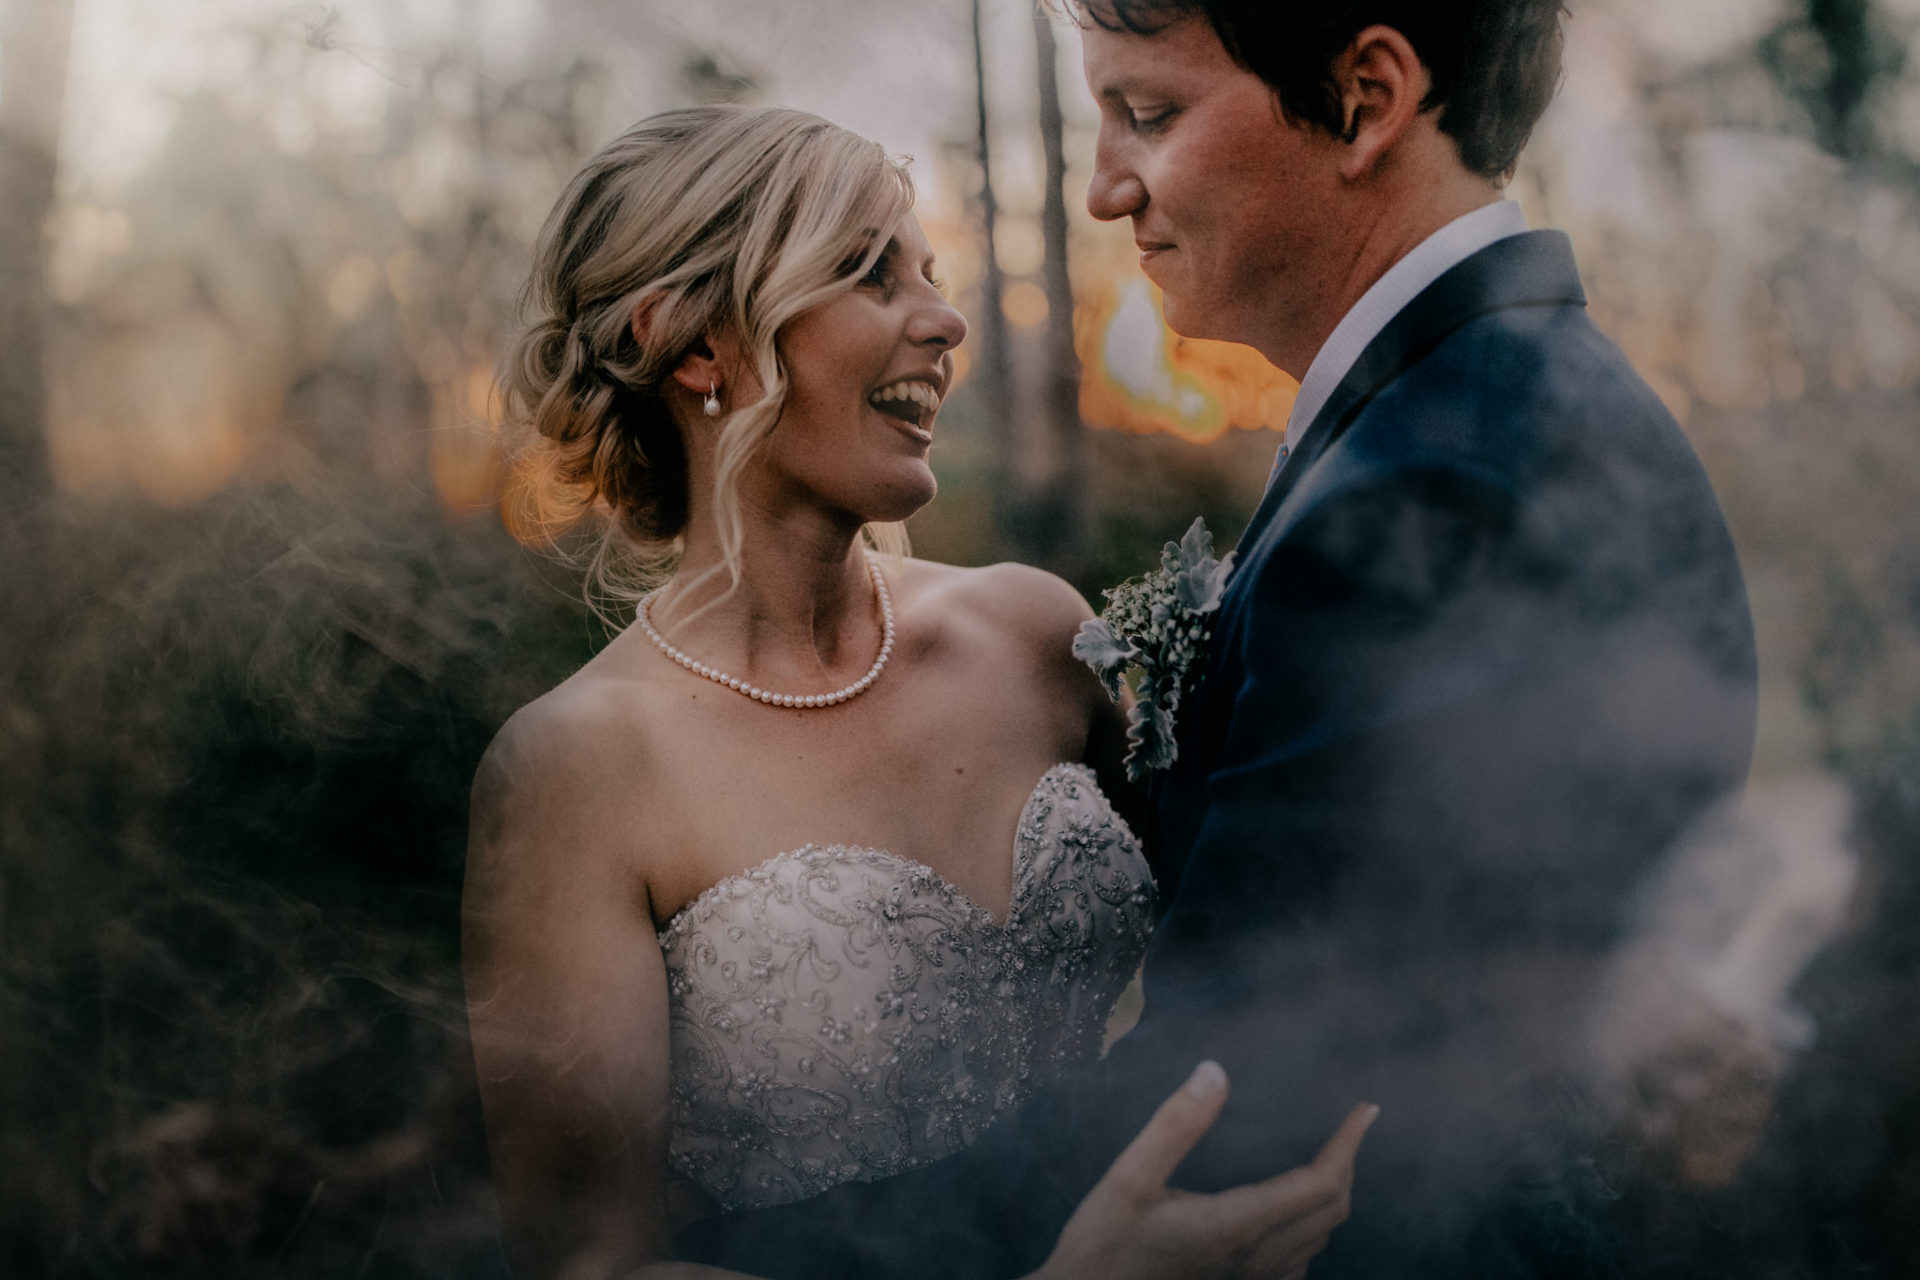 backyard-wedding-australia-melbourne-bride-groom-portrait-smoke-fire